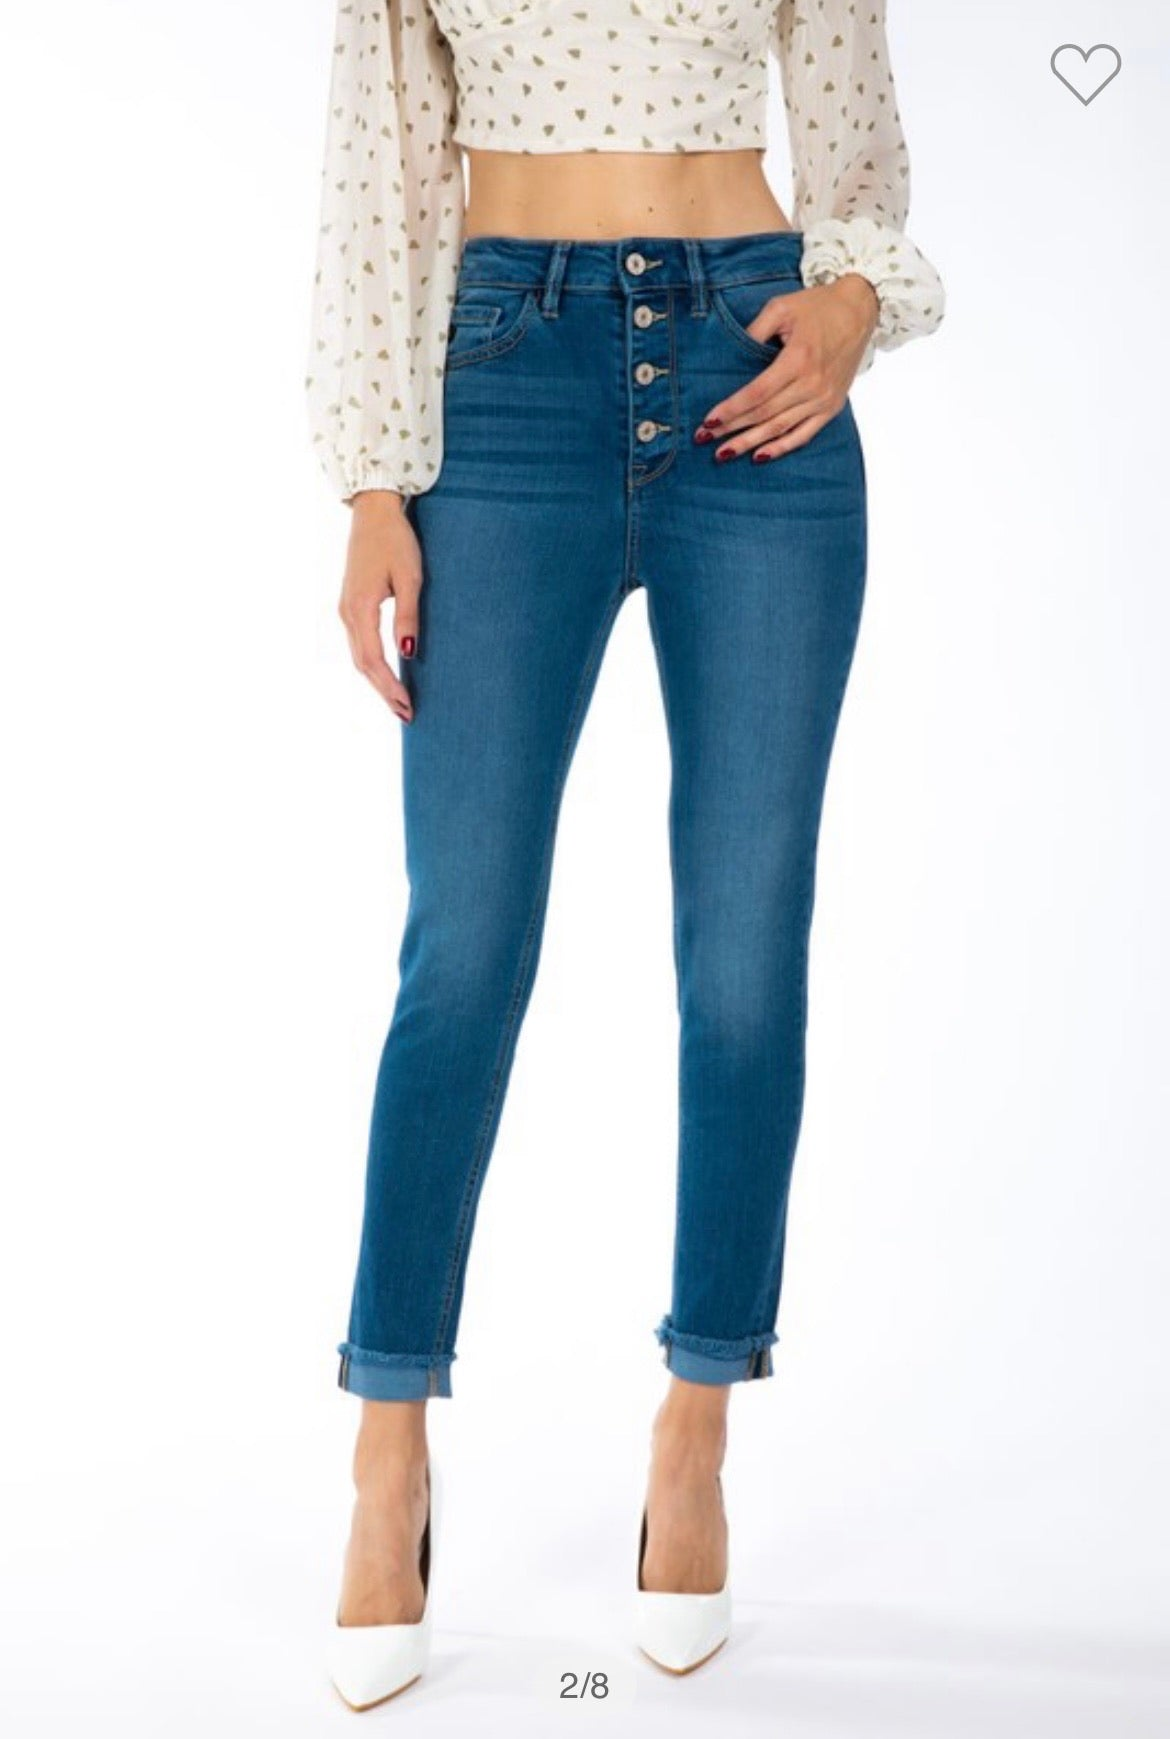 KanCan High Rise Button Fly Skinny Jeans